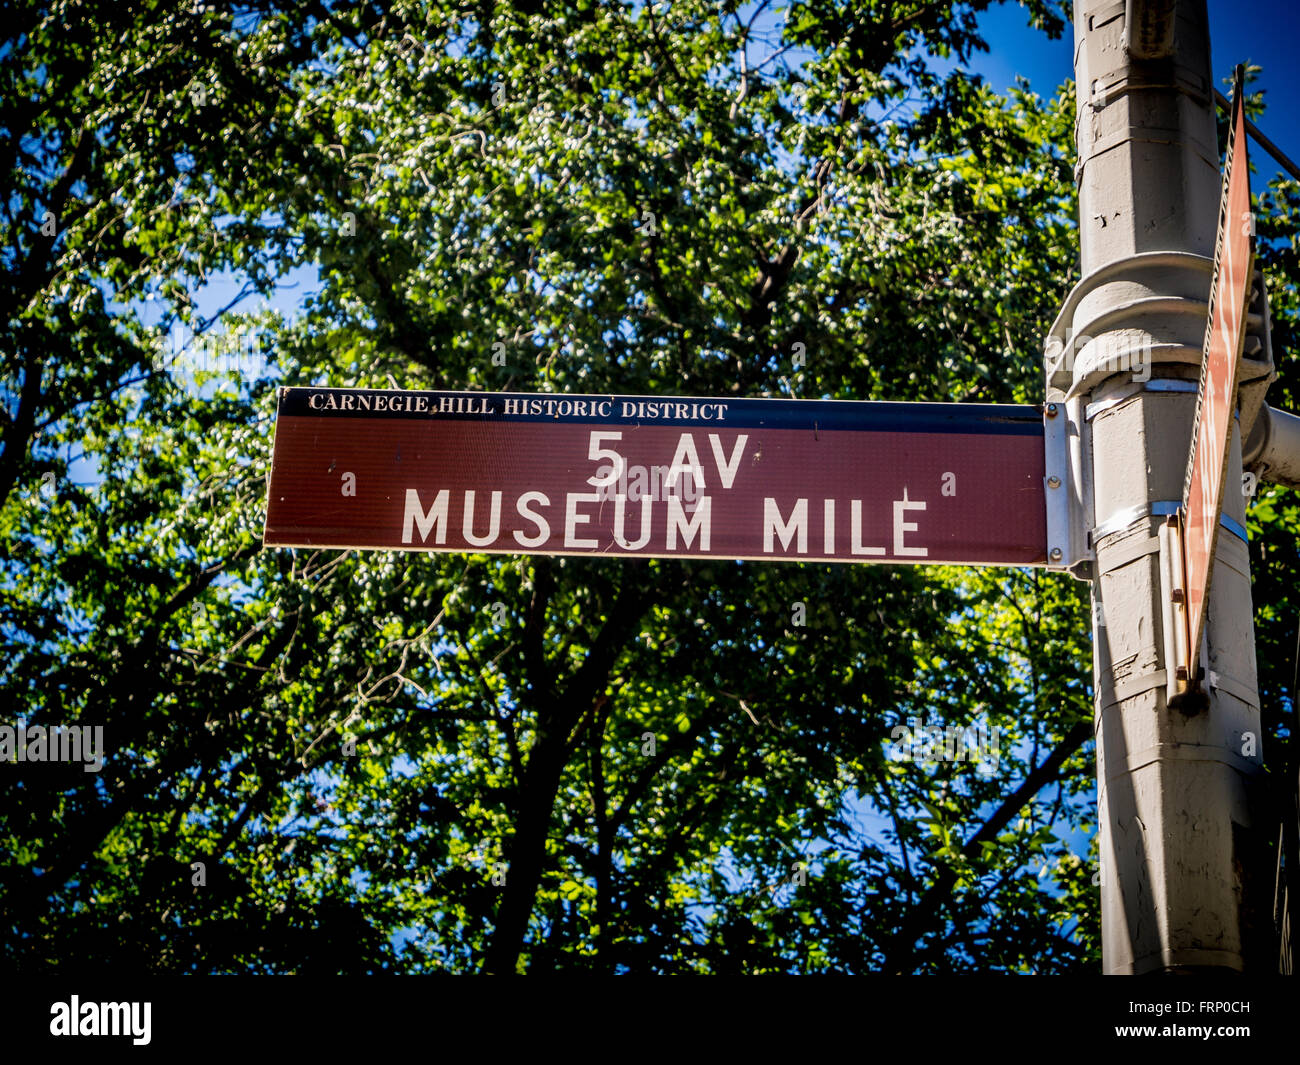 5th Avenue Museum Mile sign, New York, USA. - Stock Image